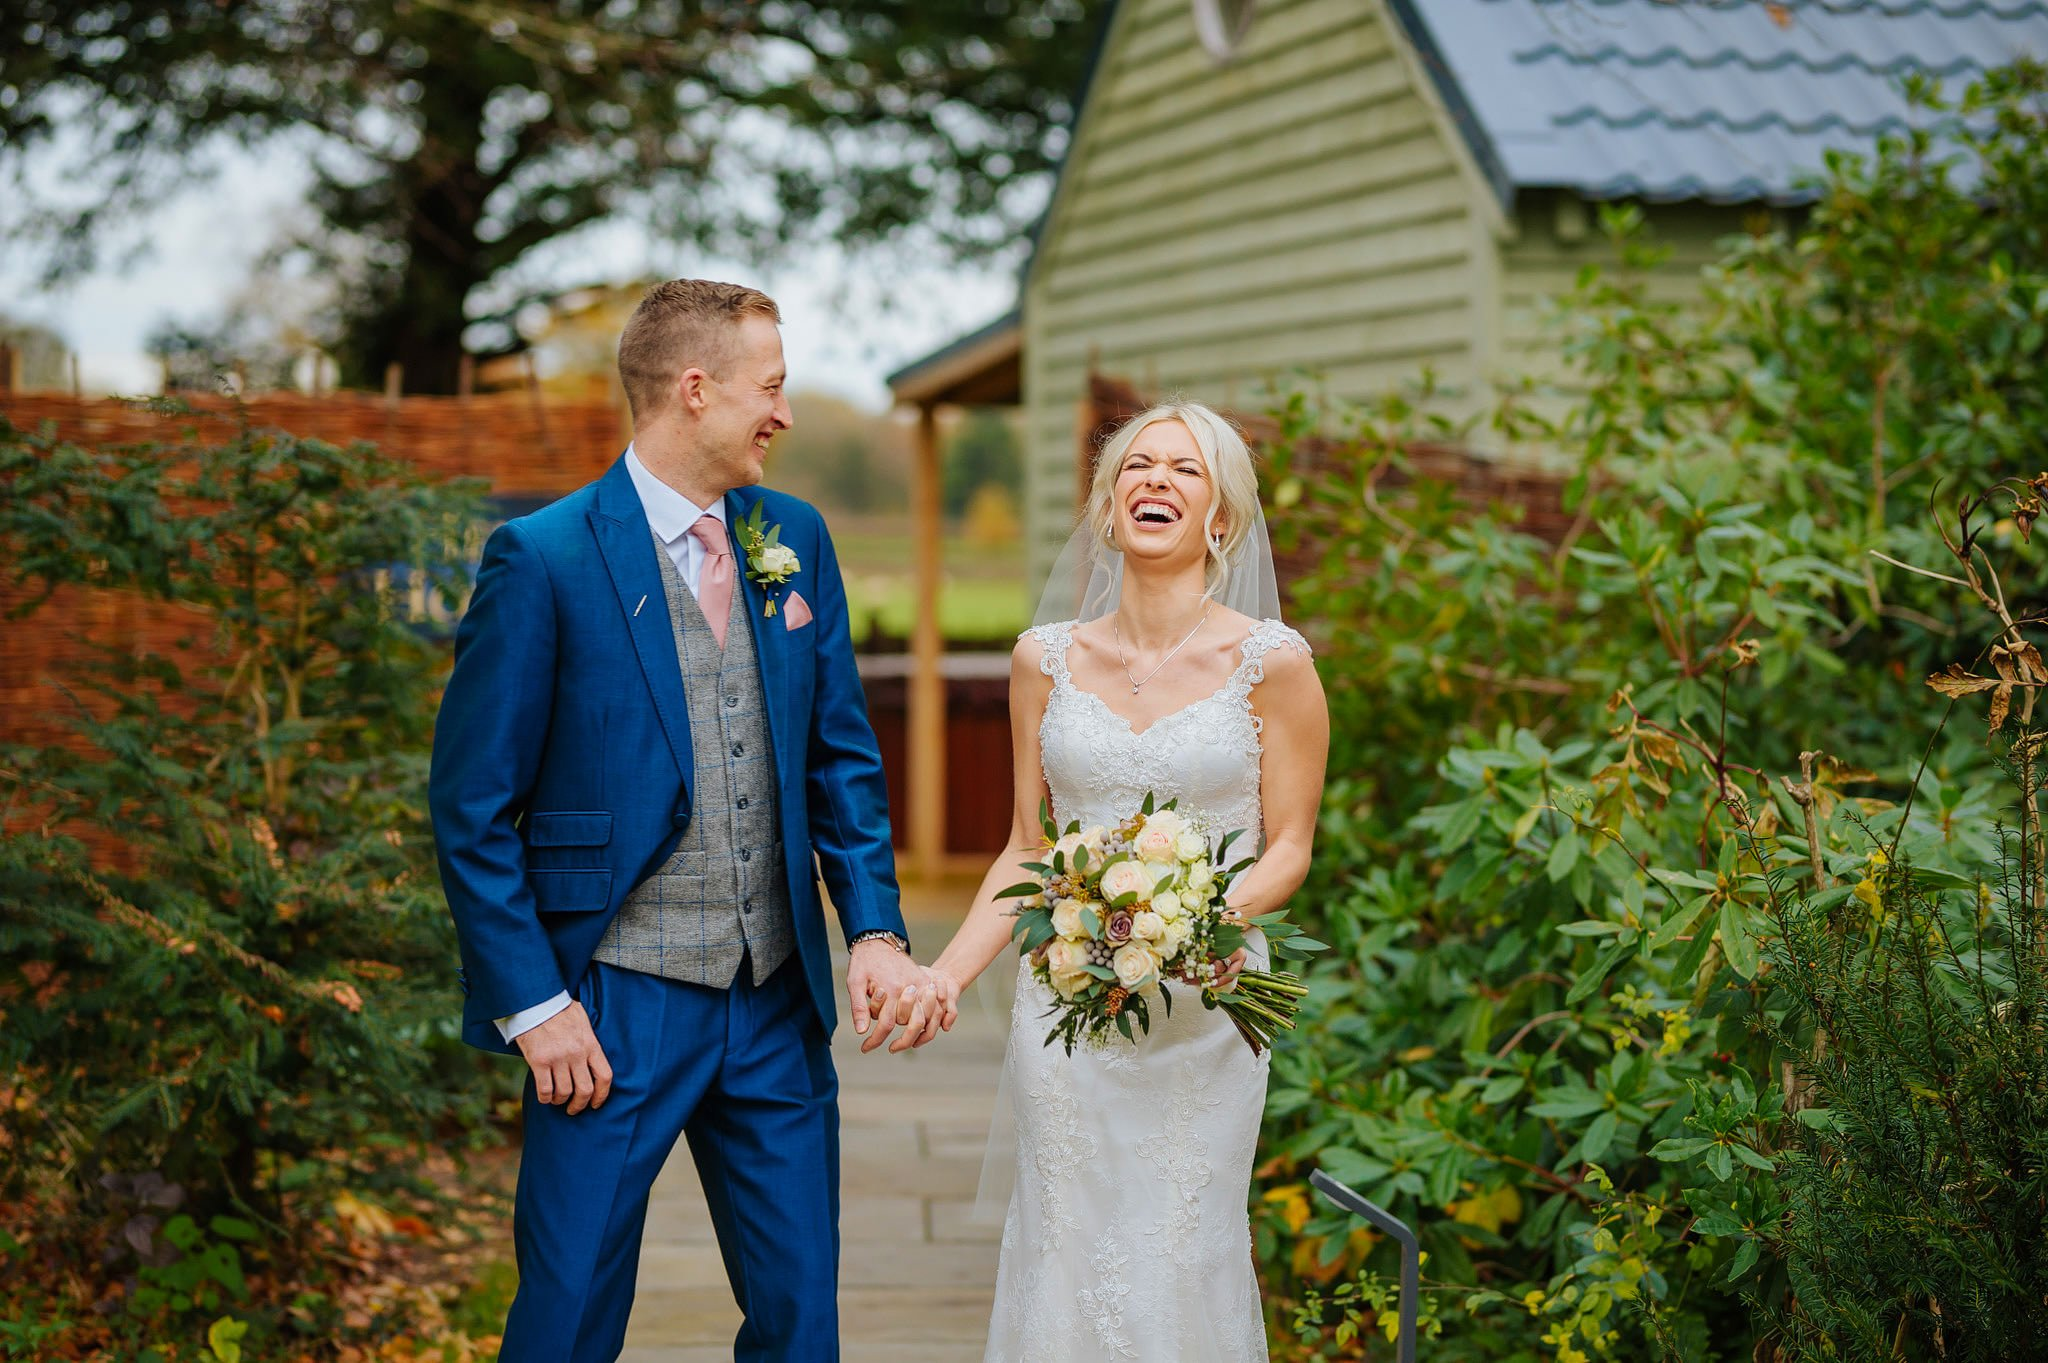 sigma 85mm art review wedding photography 119 - Sigma 85mm F1.4 ART review vs Wedding Photography